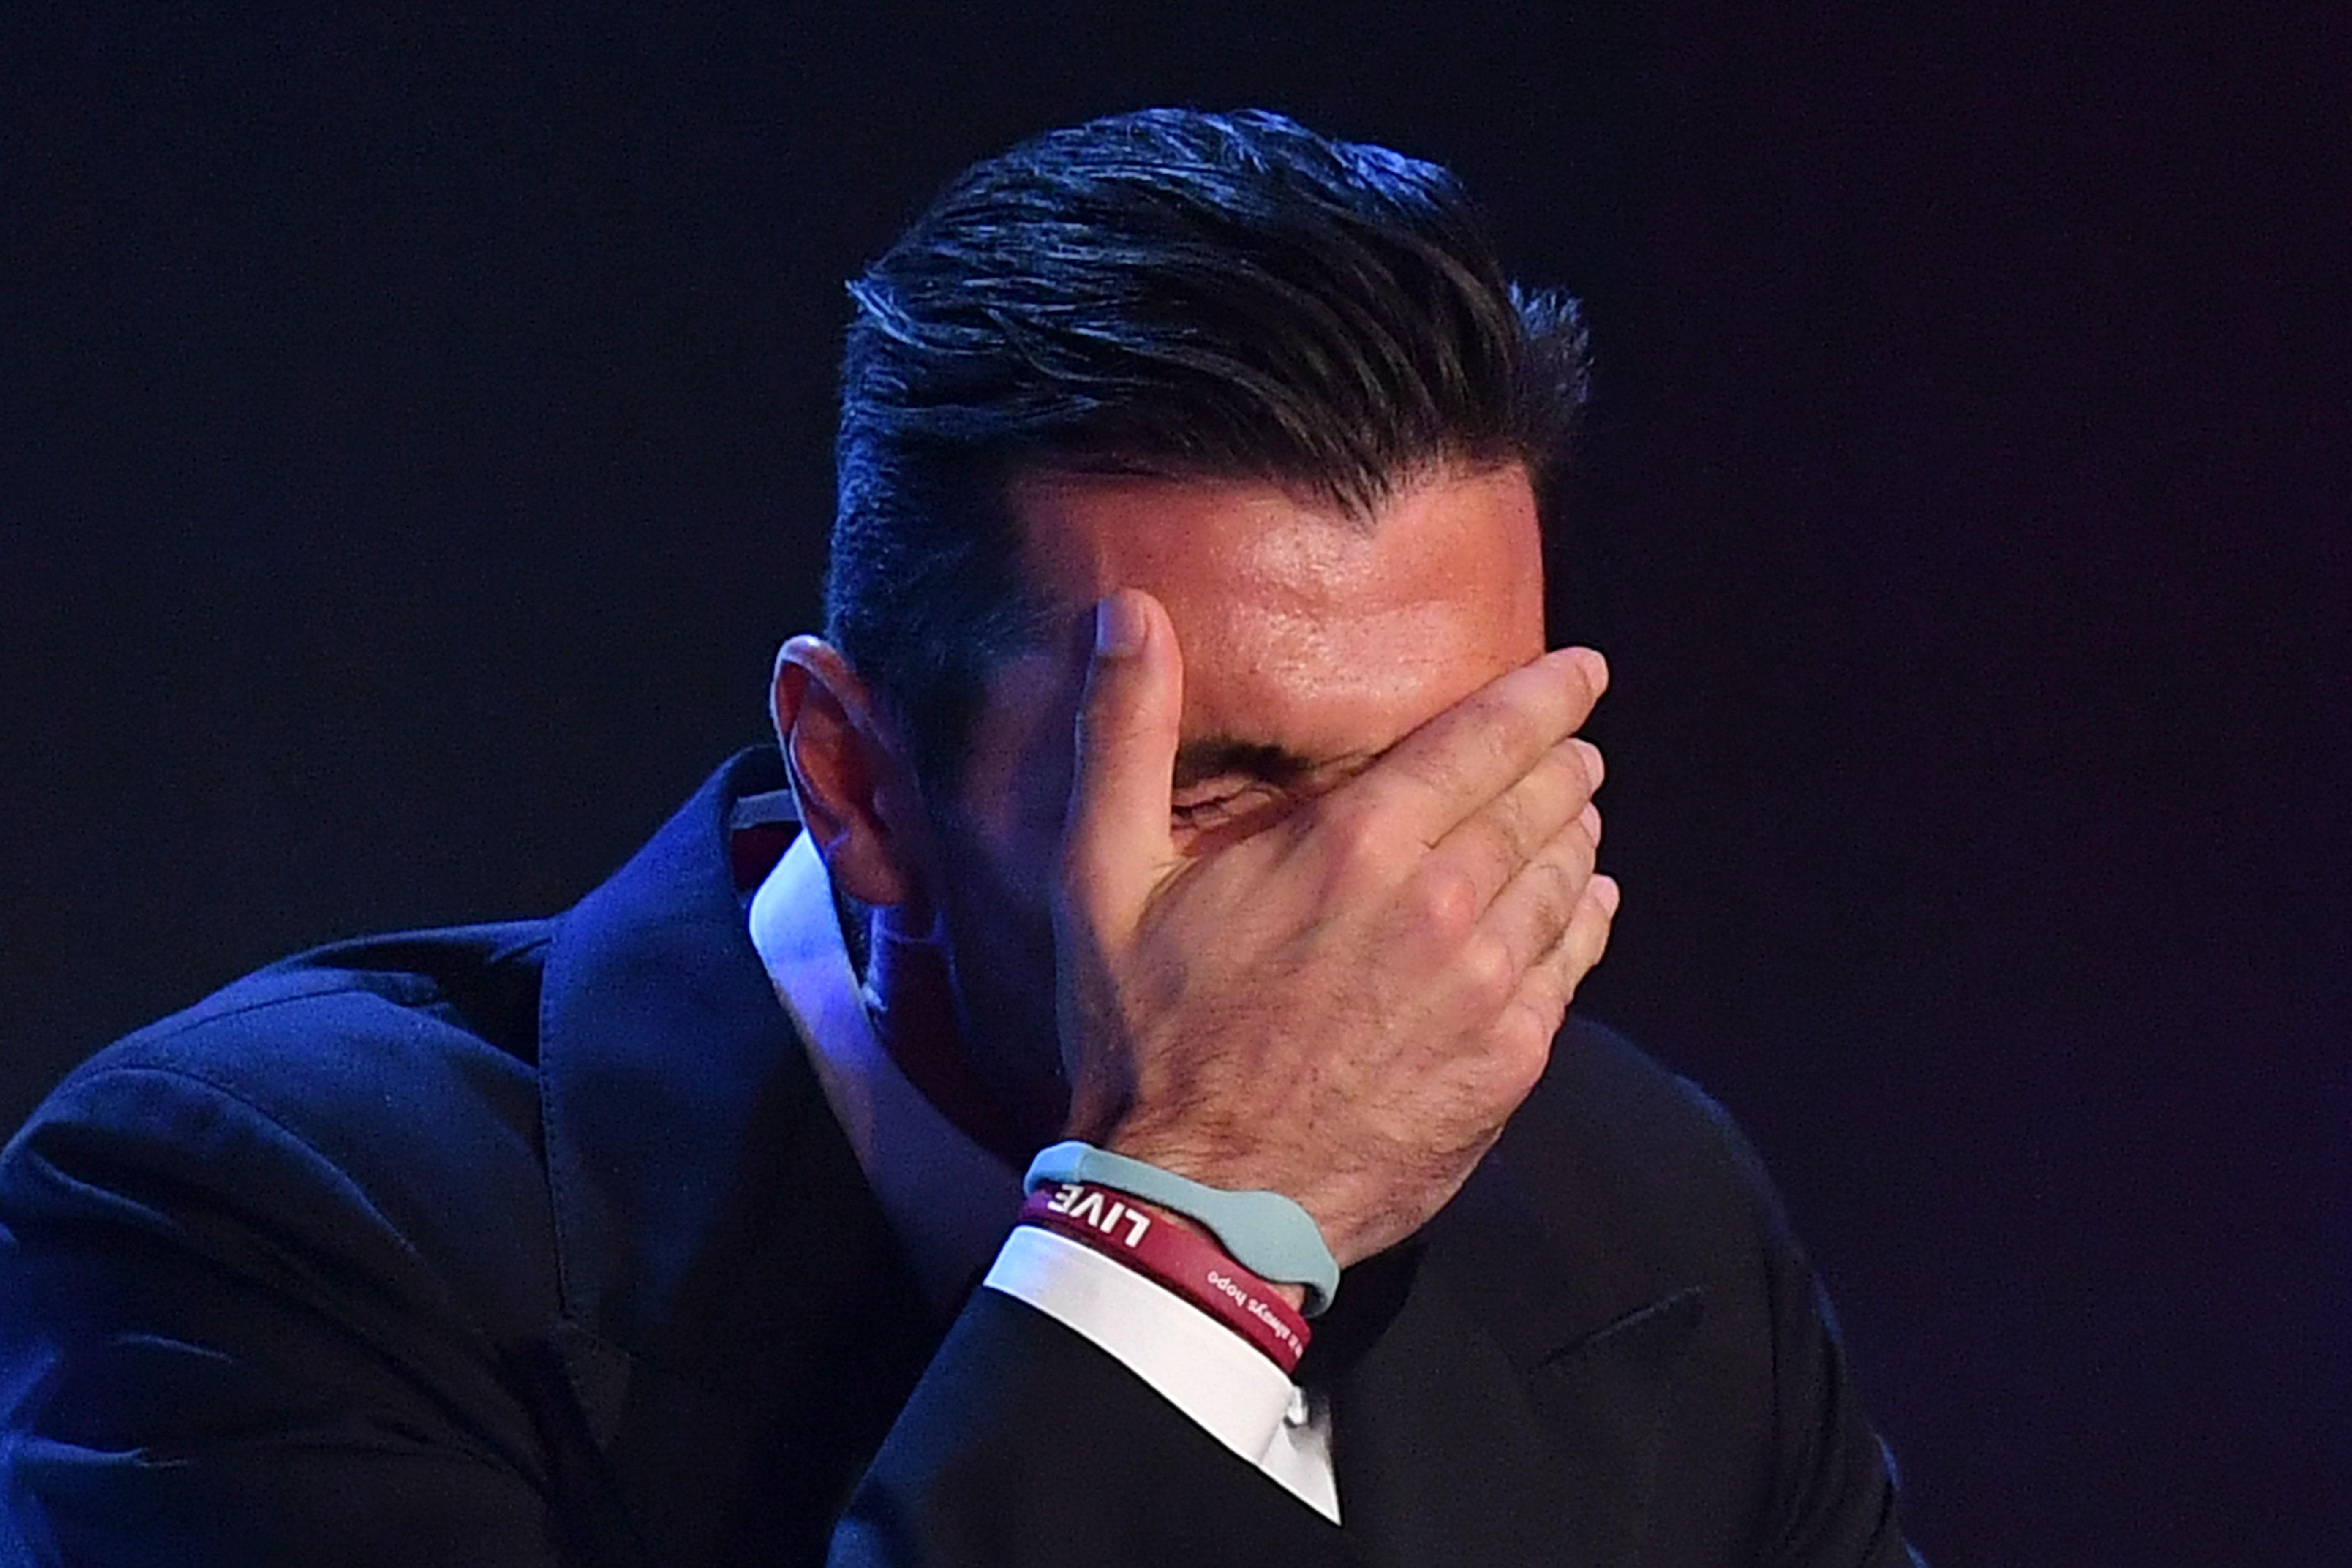 Gigi Buffon was named the best keeper in the world recently.. but he could miss out on the World Cup